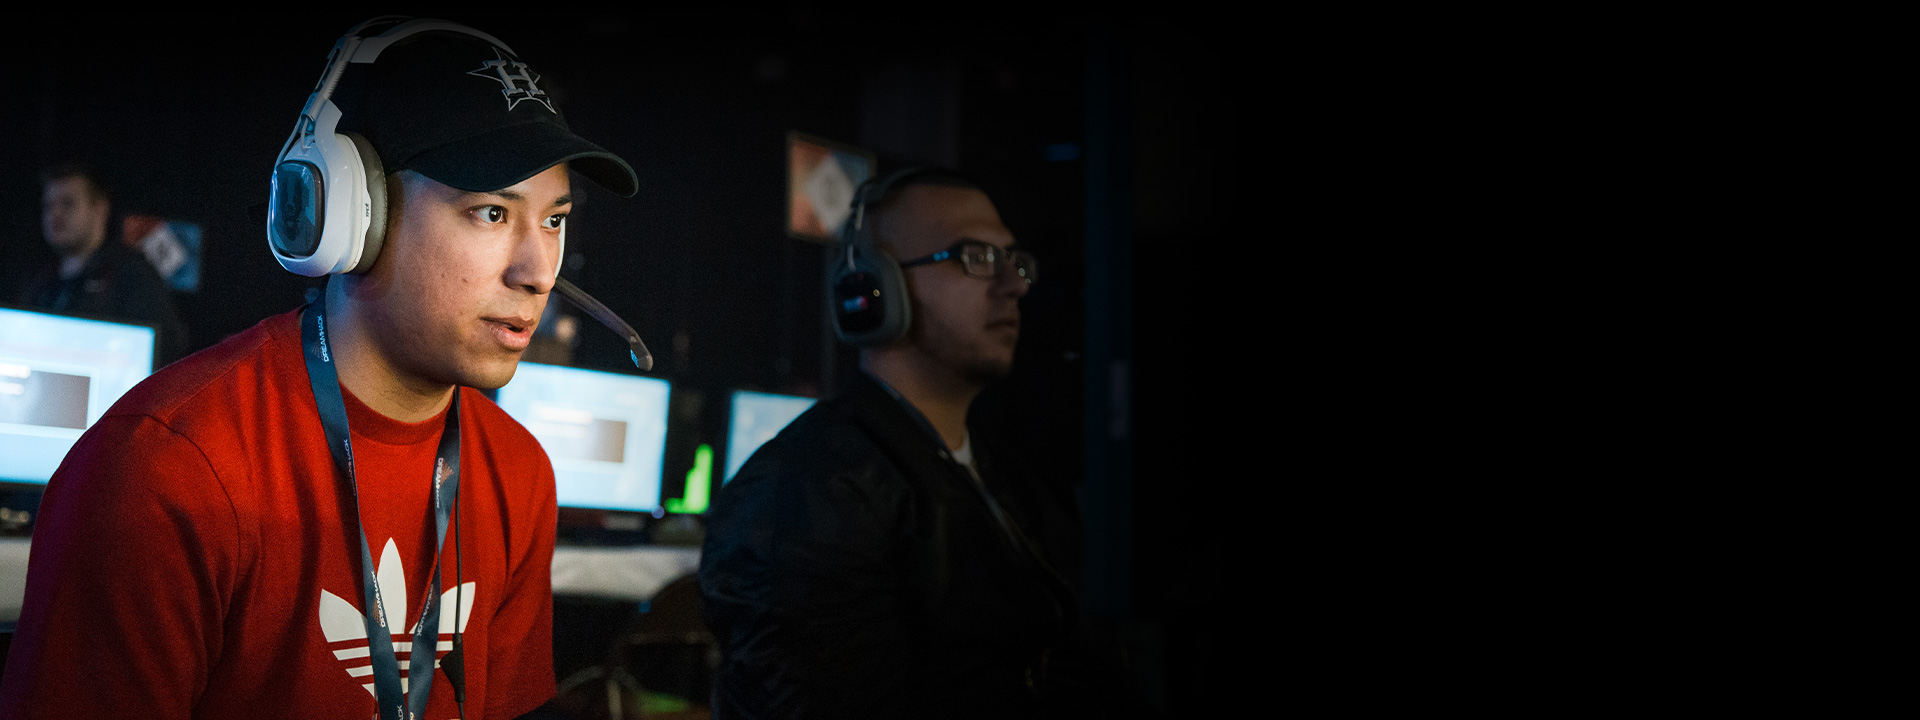 Two gamers competing at an esports event